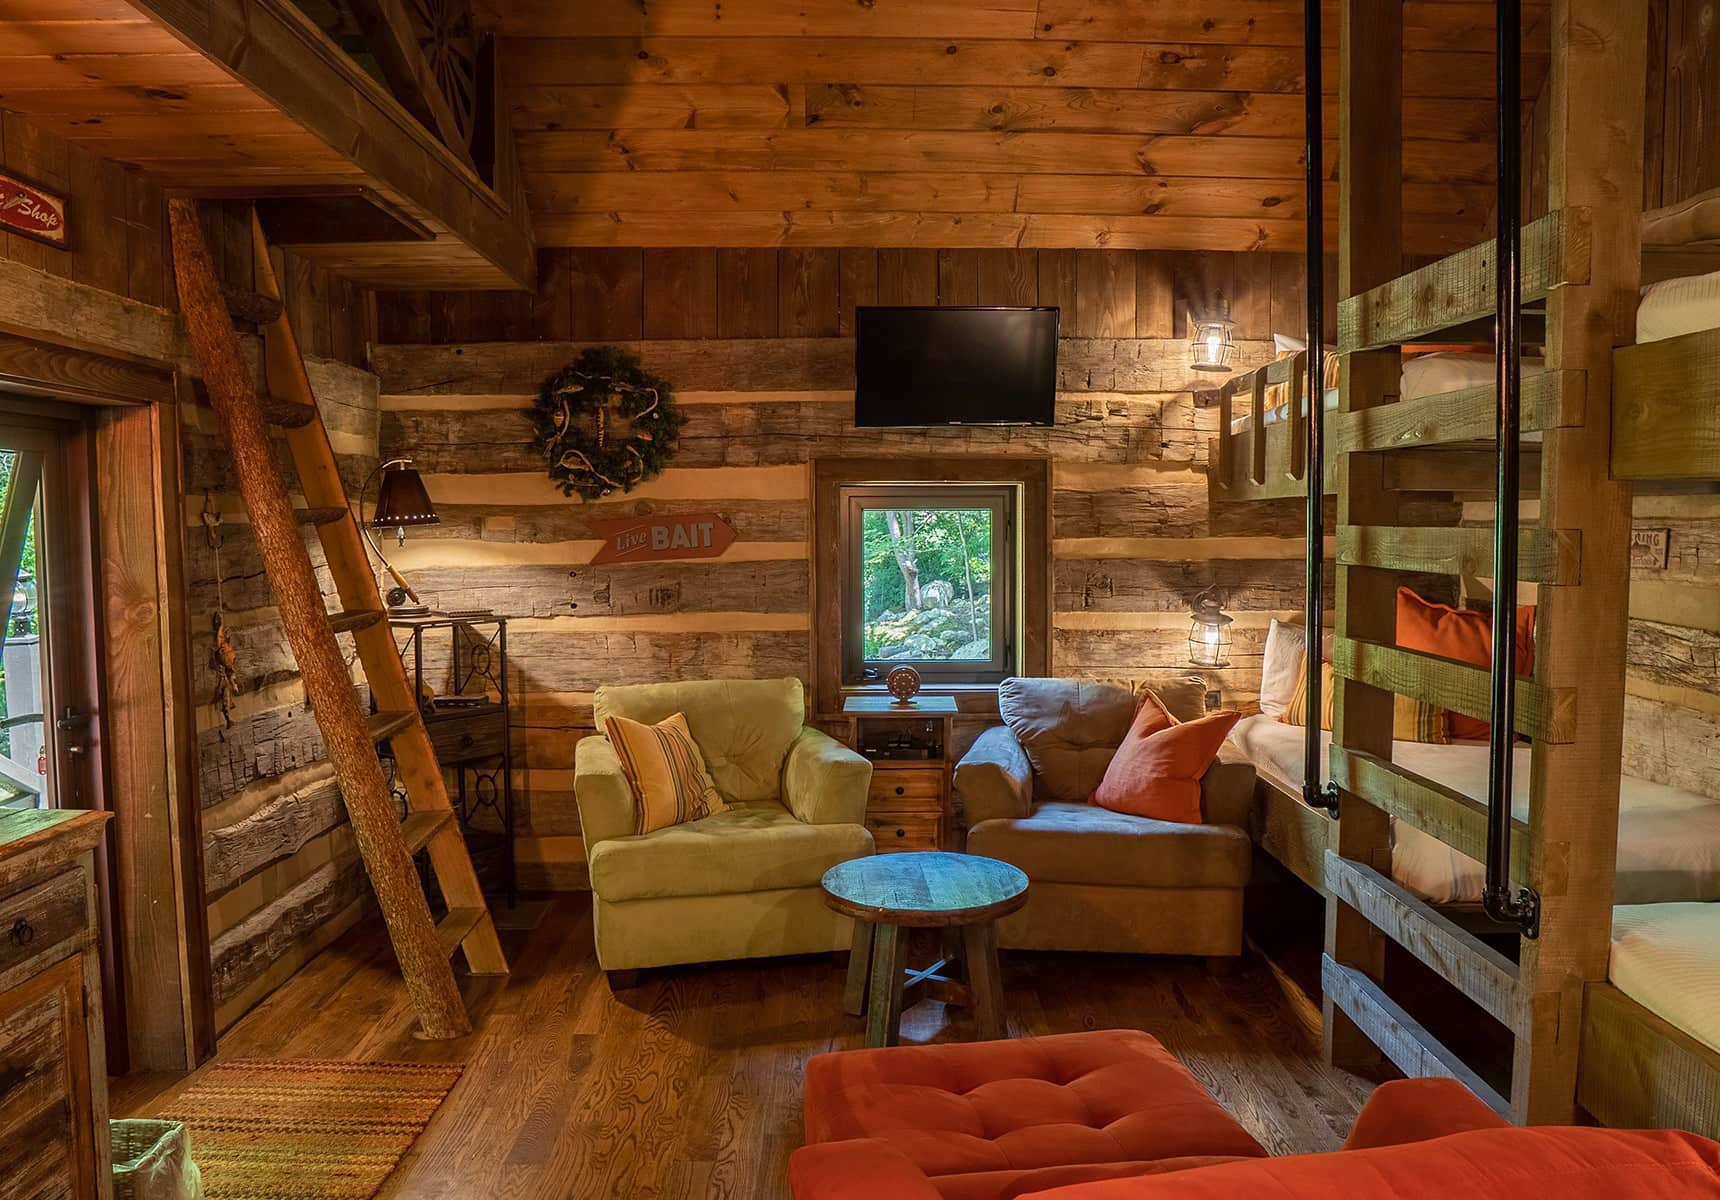 Fishing Creek Cabin living room with several couches and ladder to the loft sleeping area